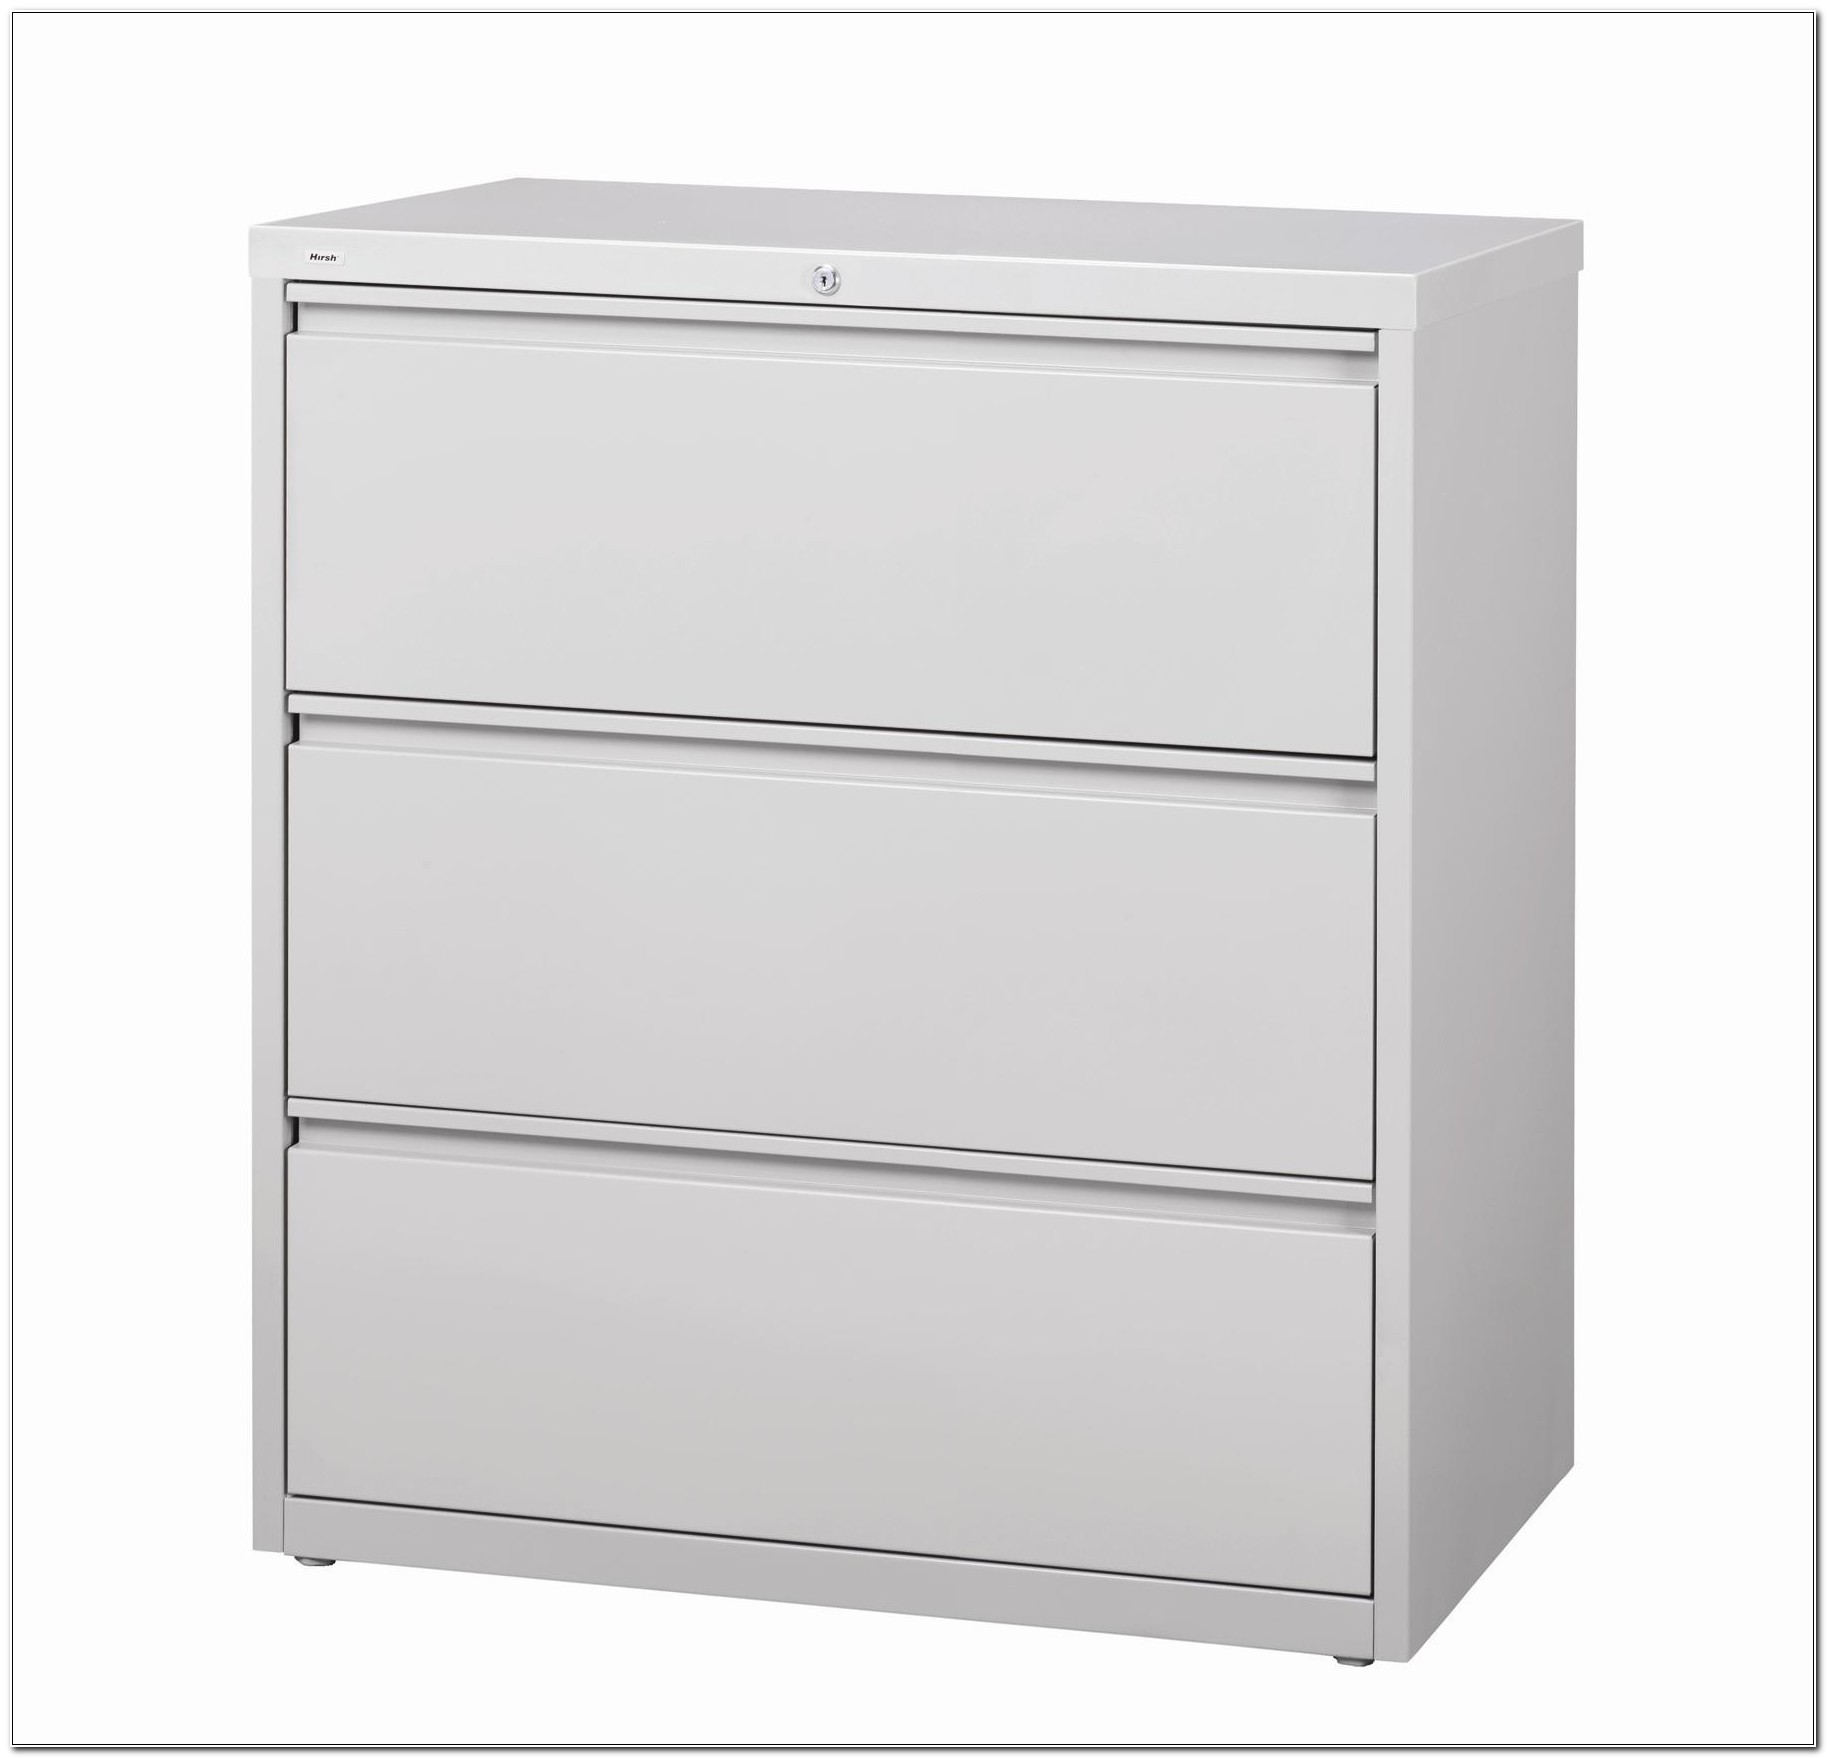 3 Drawer Lateral File Cabinet White